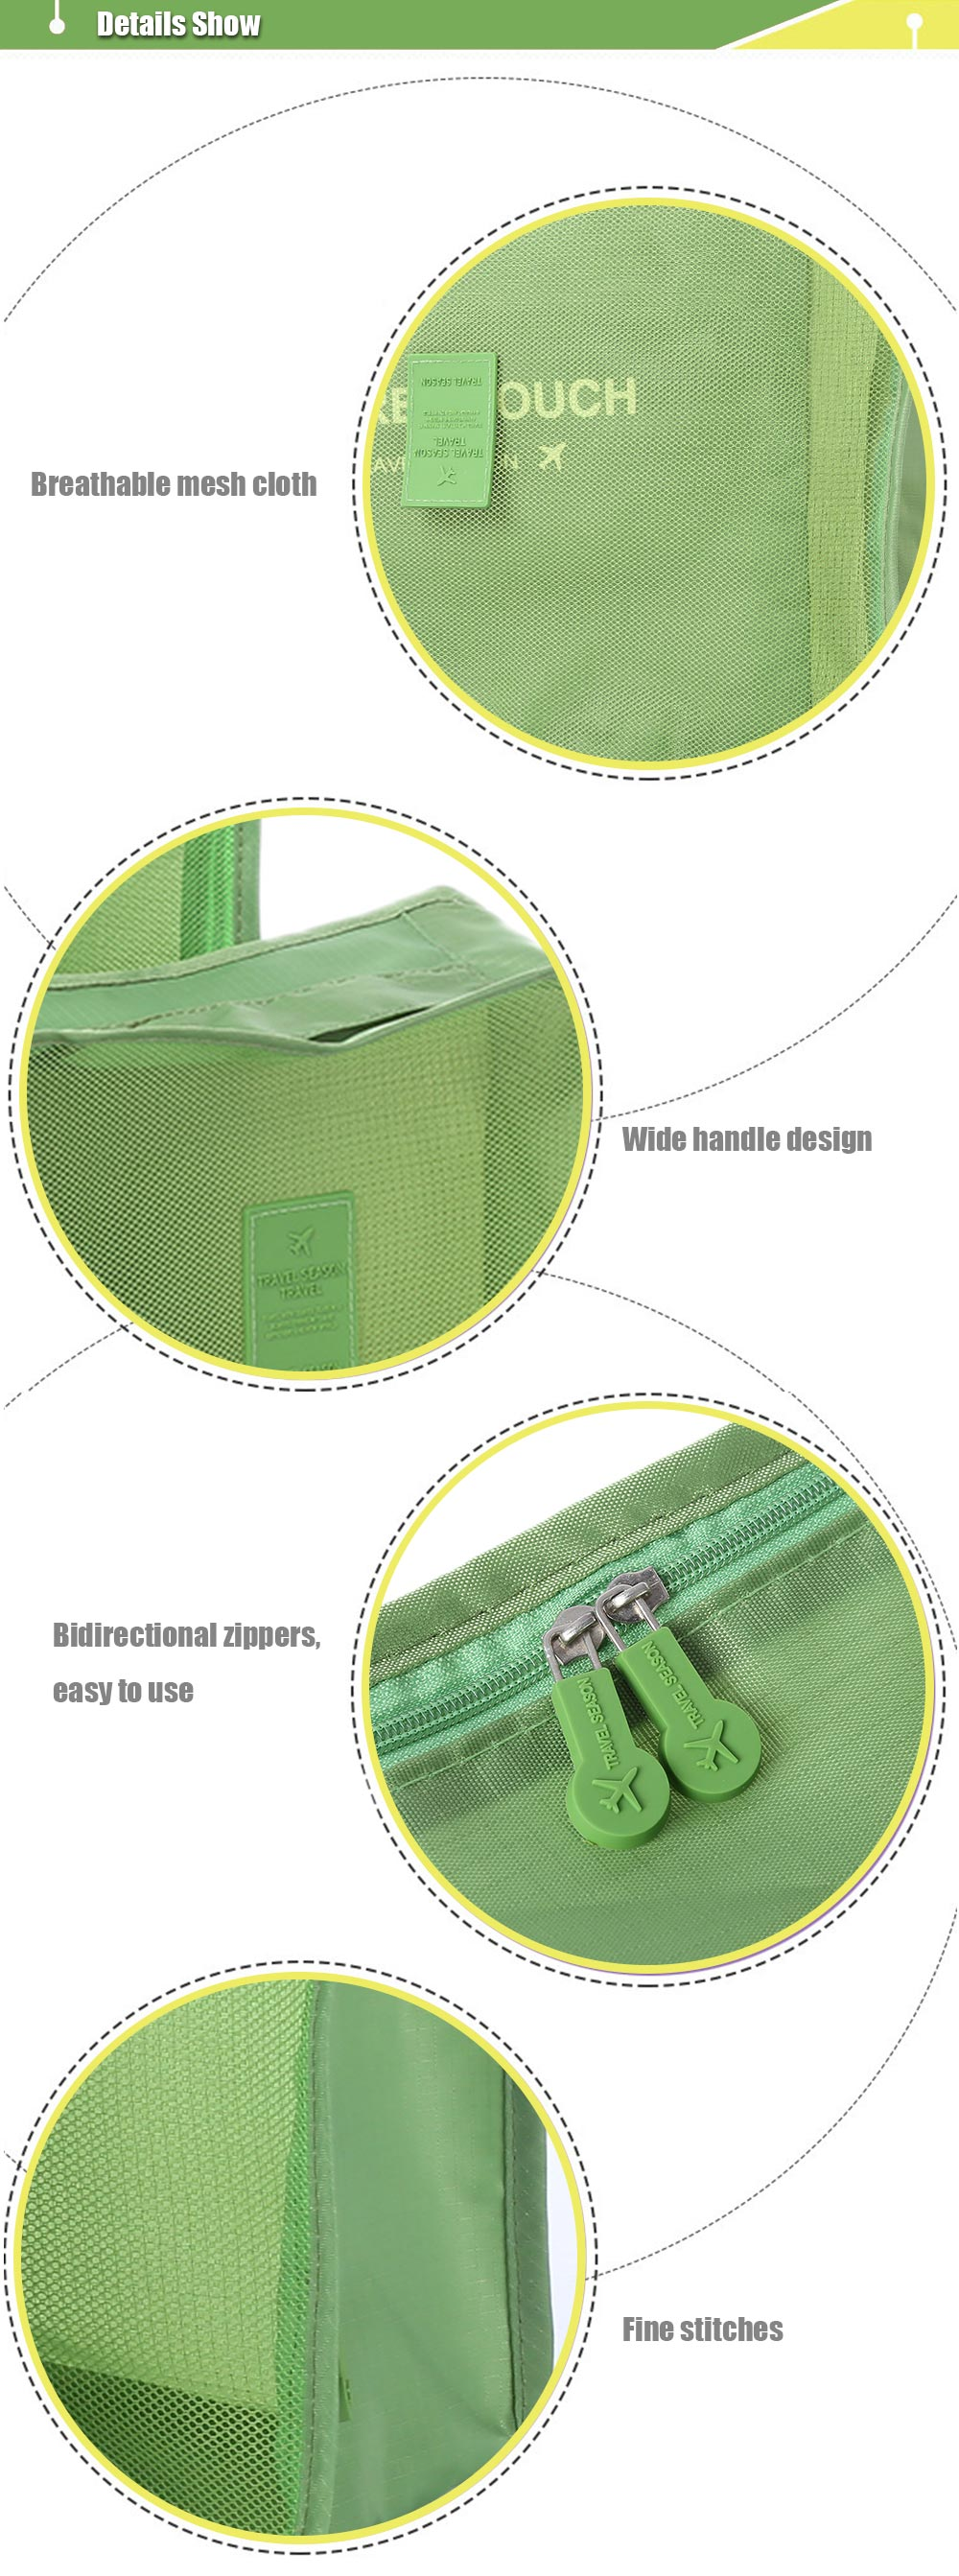 Dixiu 6 in 1 Large Capacity Luggage Bags Journey Organizer for Outdoor Traveling Home Use